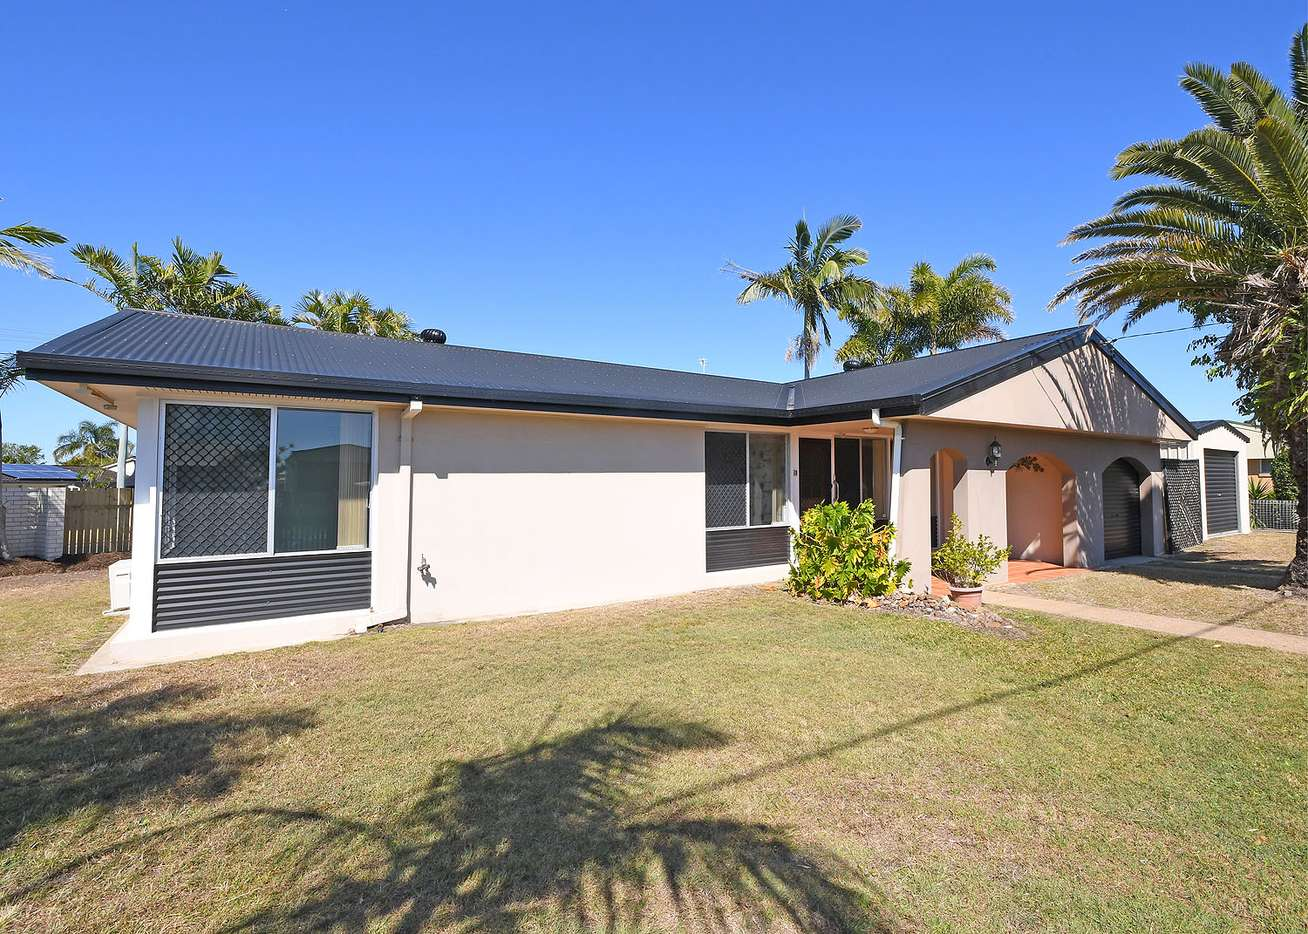 Main view of Homely property listing, 2 Turrum Street, Scarness, QLD 4655